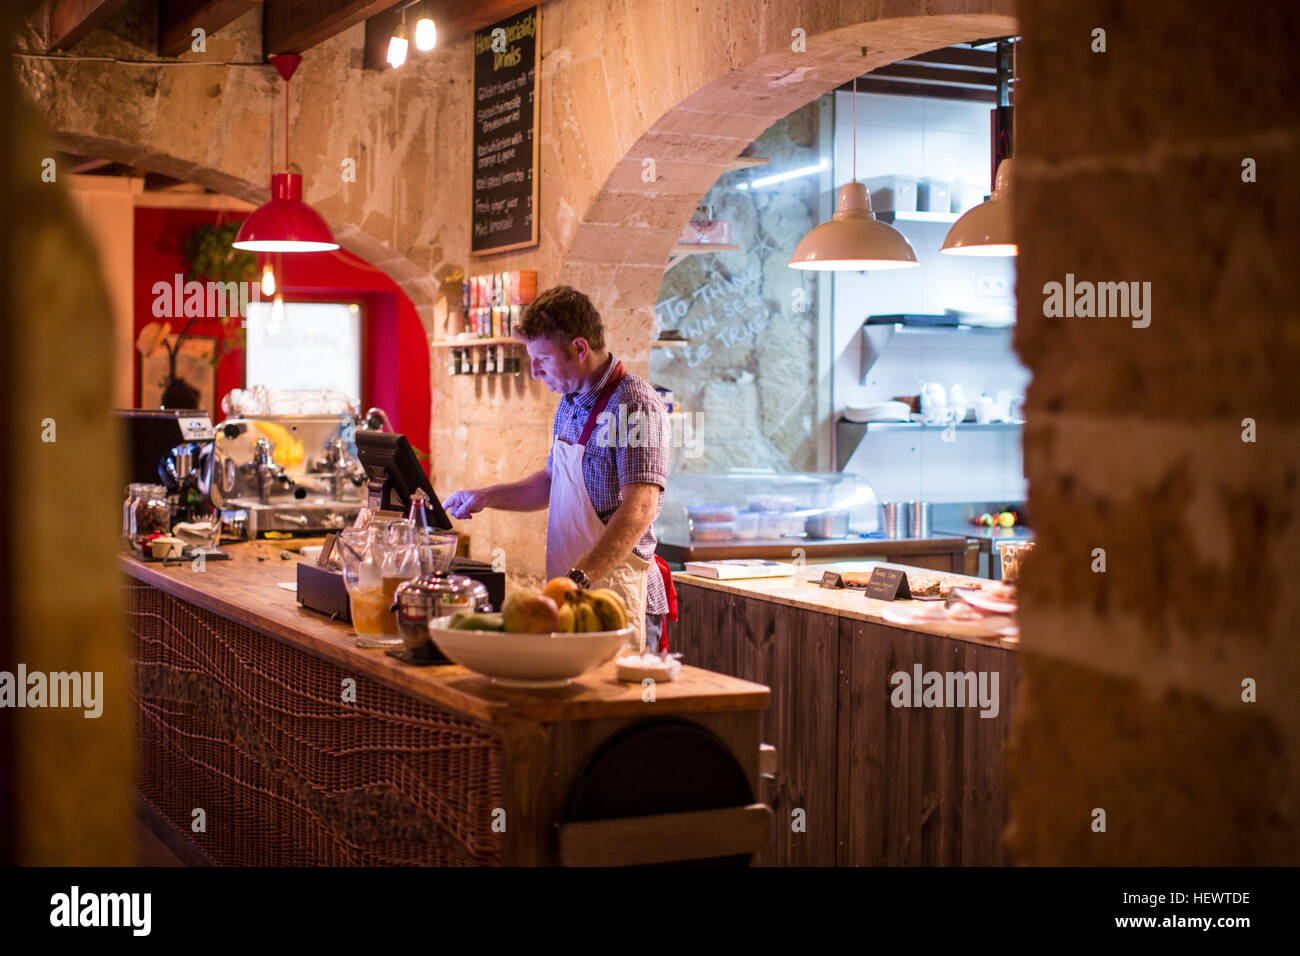 Restaurant owner working behind cash register - Stock Image